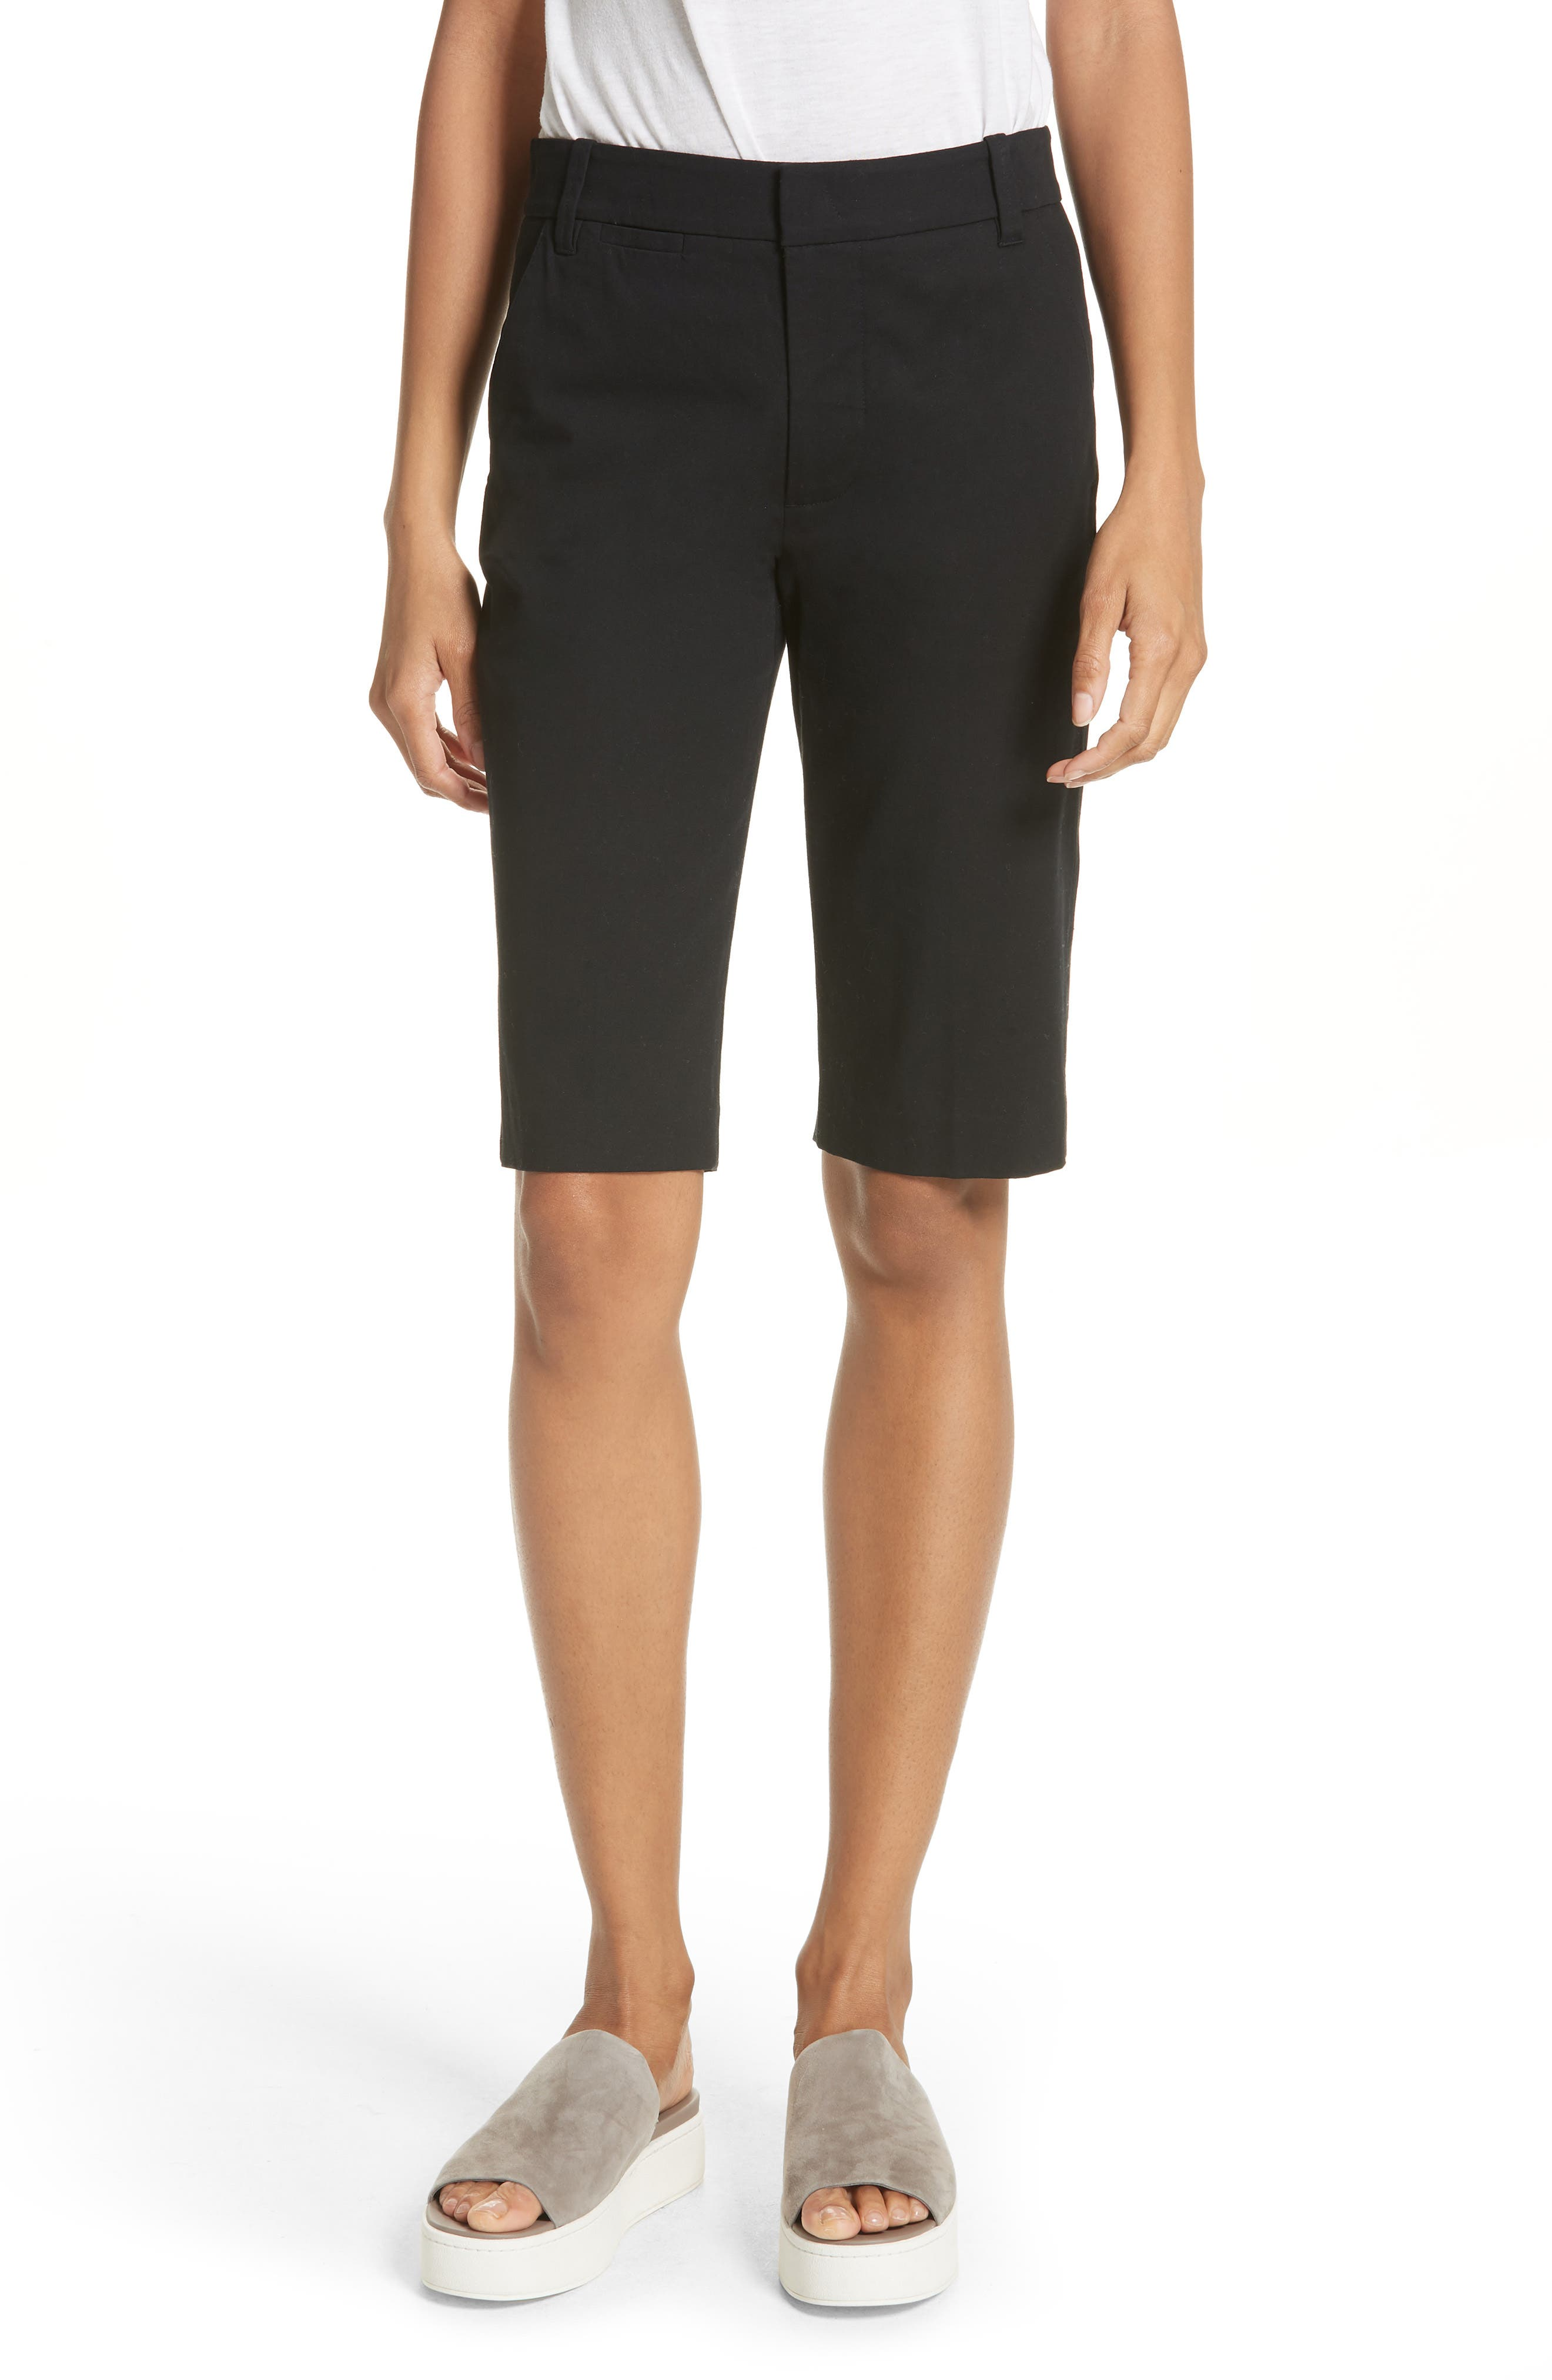 Bermuda Shorts,                             Main thumbnail 1, color,                             BLACK